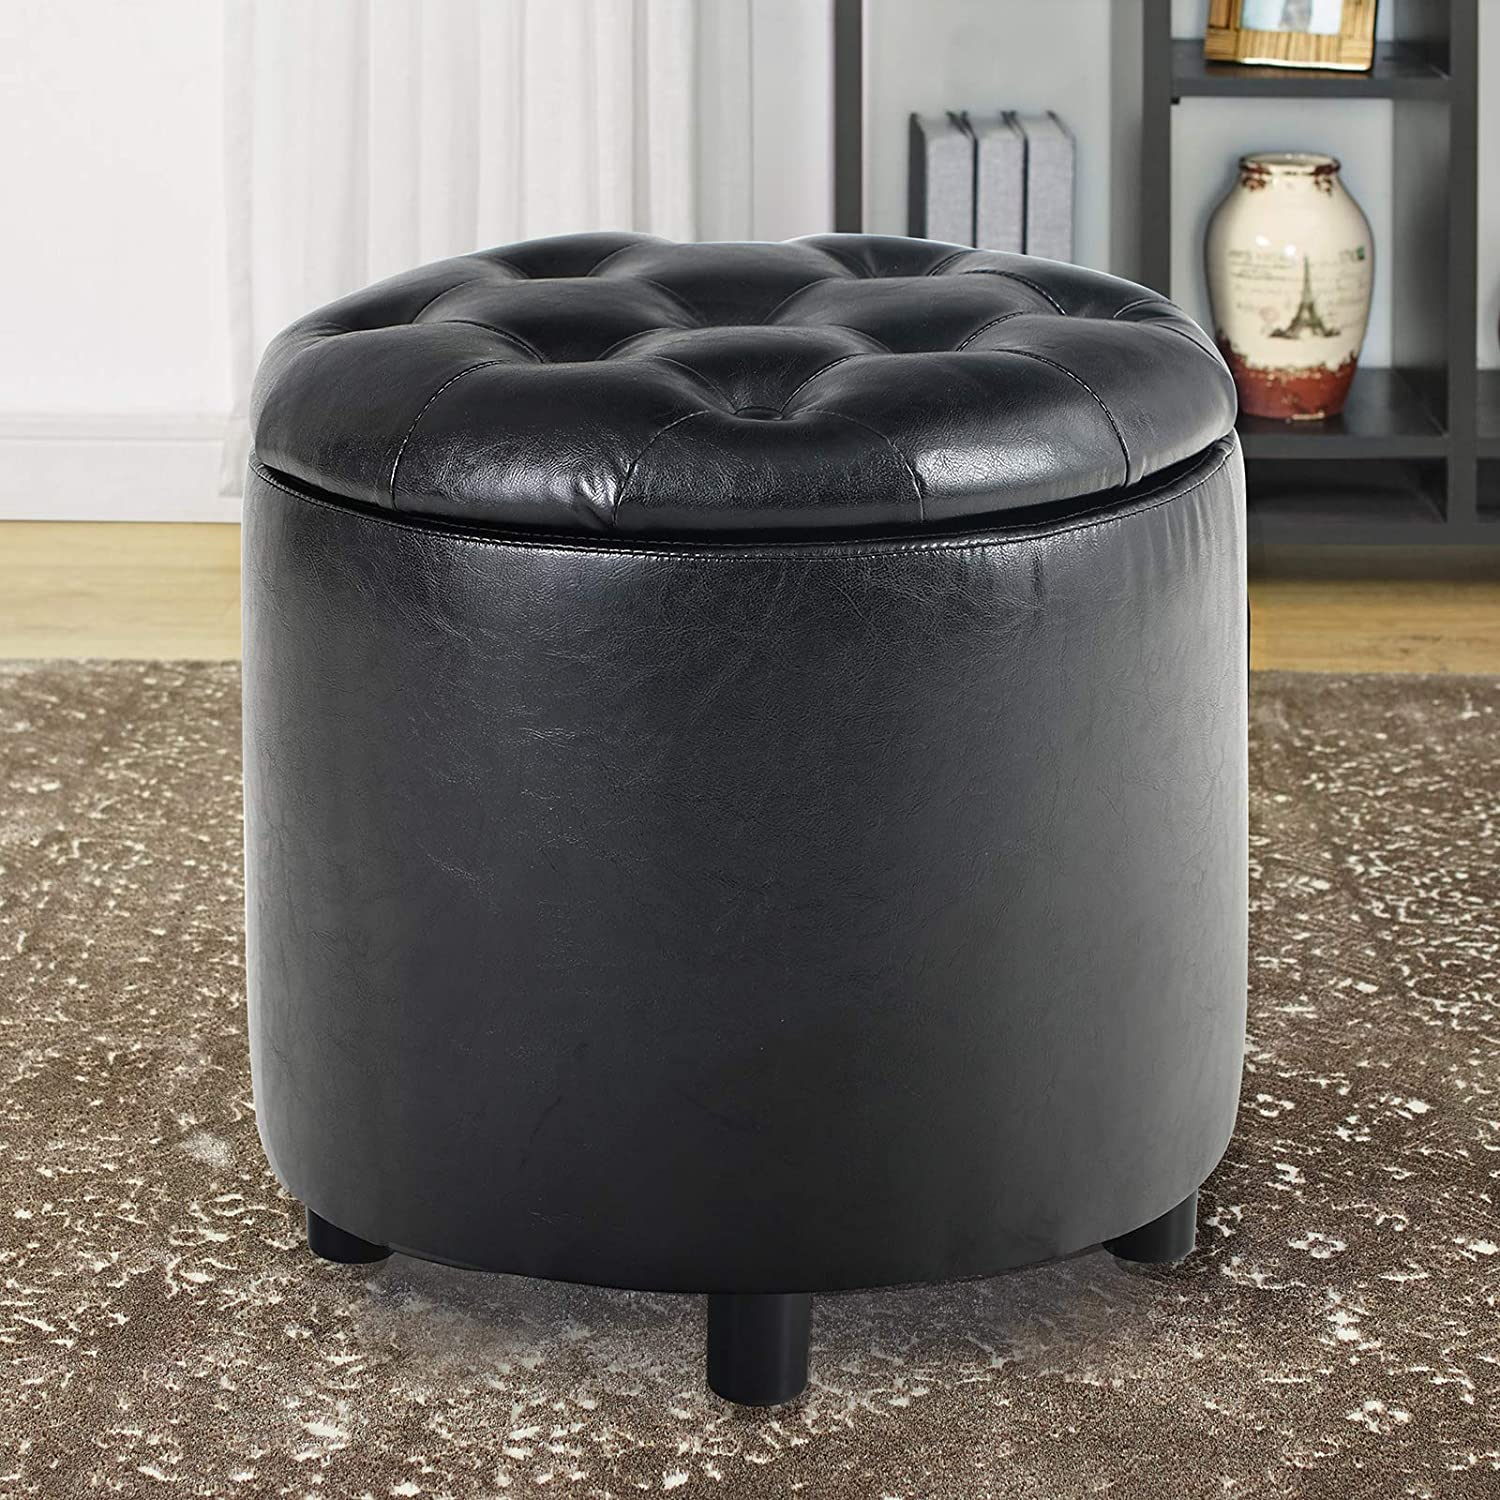 MAISON ARTS Round Storage Ottoman Vanity Stool Tufted Pouf Ottoman Coffee Table Side Table Foot Stool for Living Room Seat Dressing Chair Footrest, 4 Legs, Black